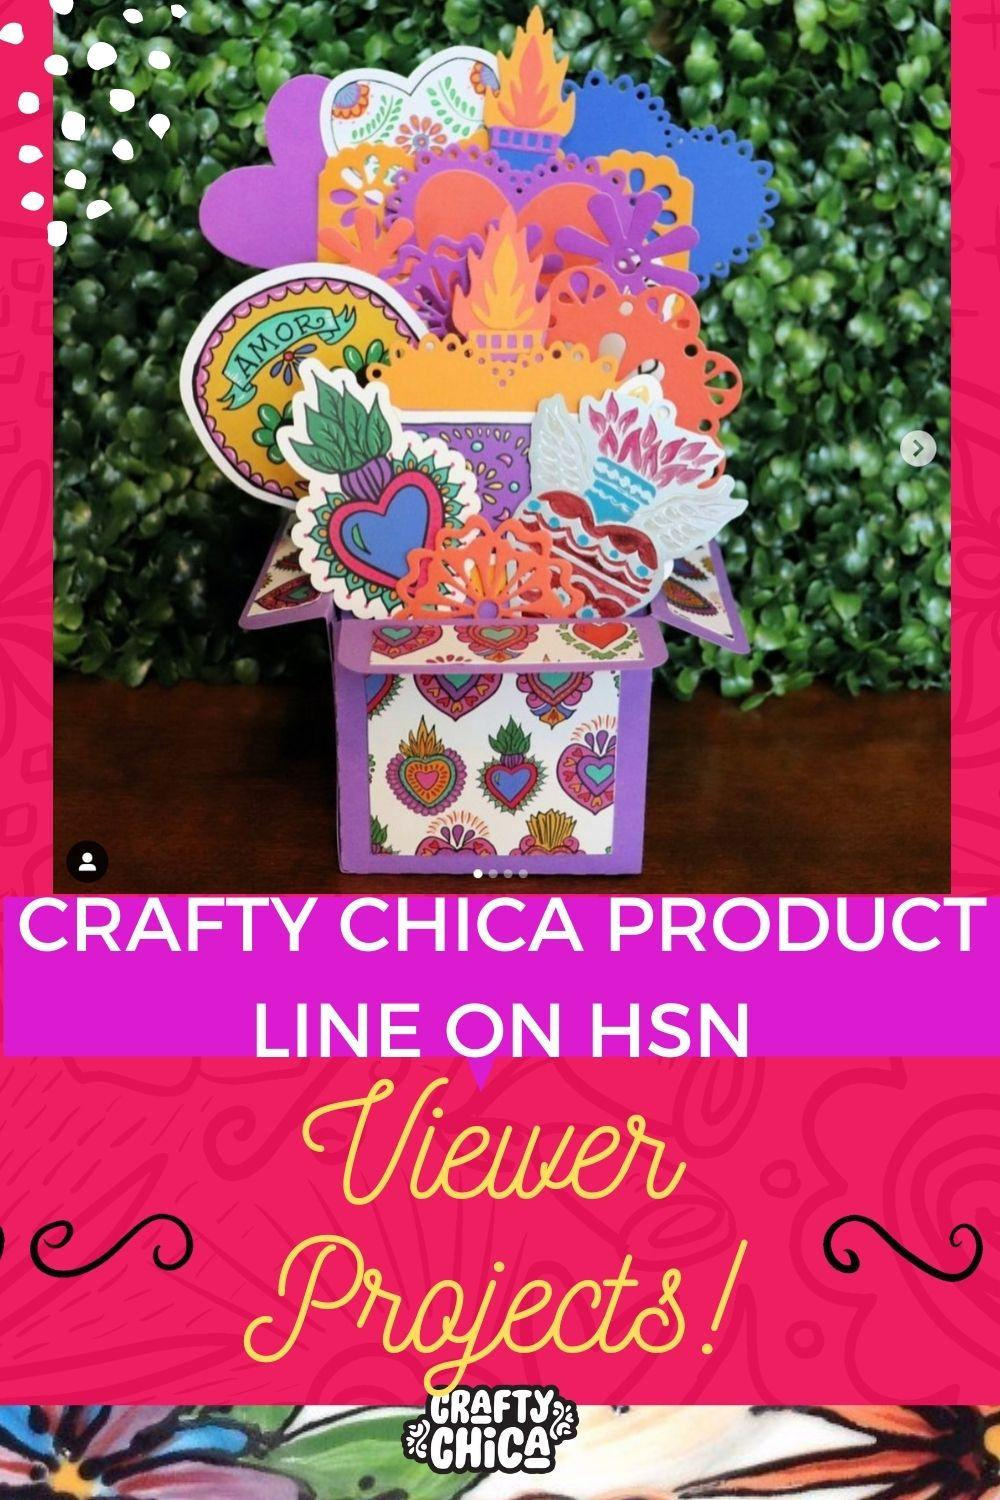 Crafty Chica product line on HSN